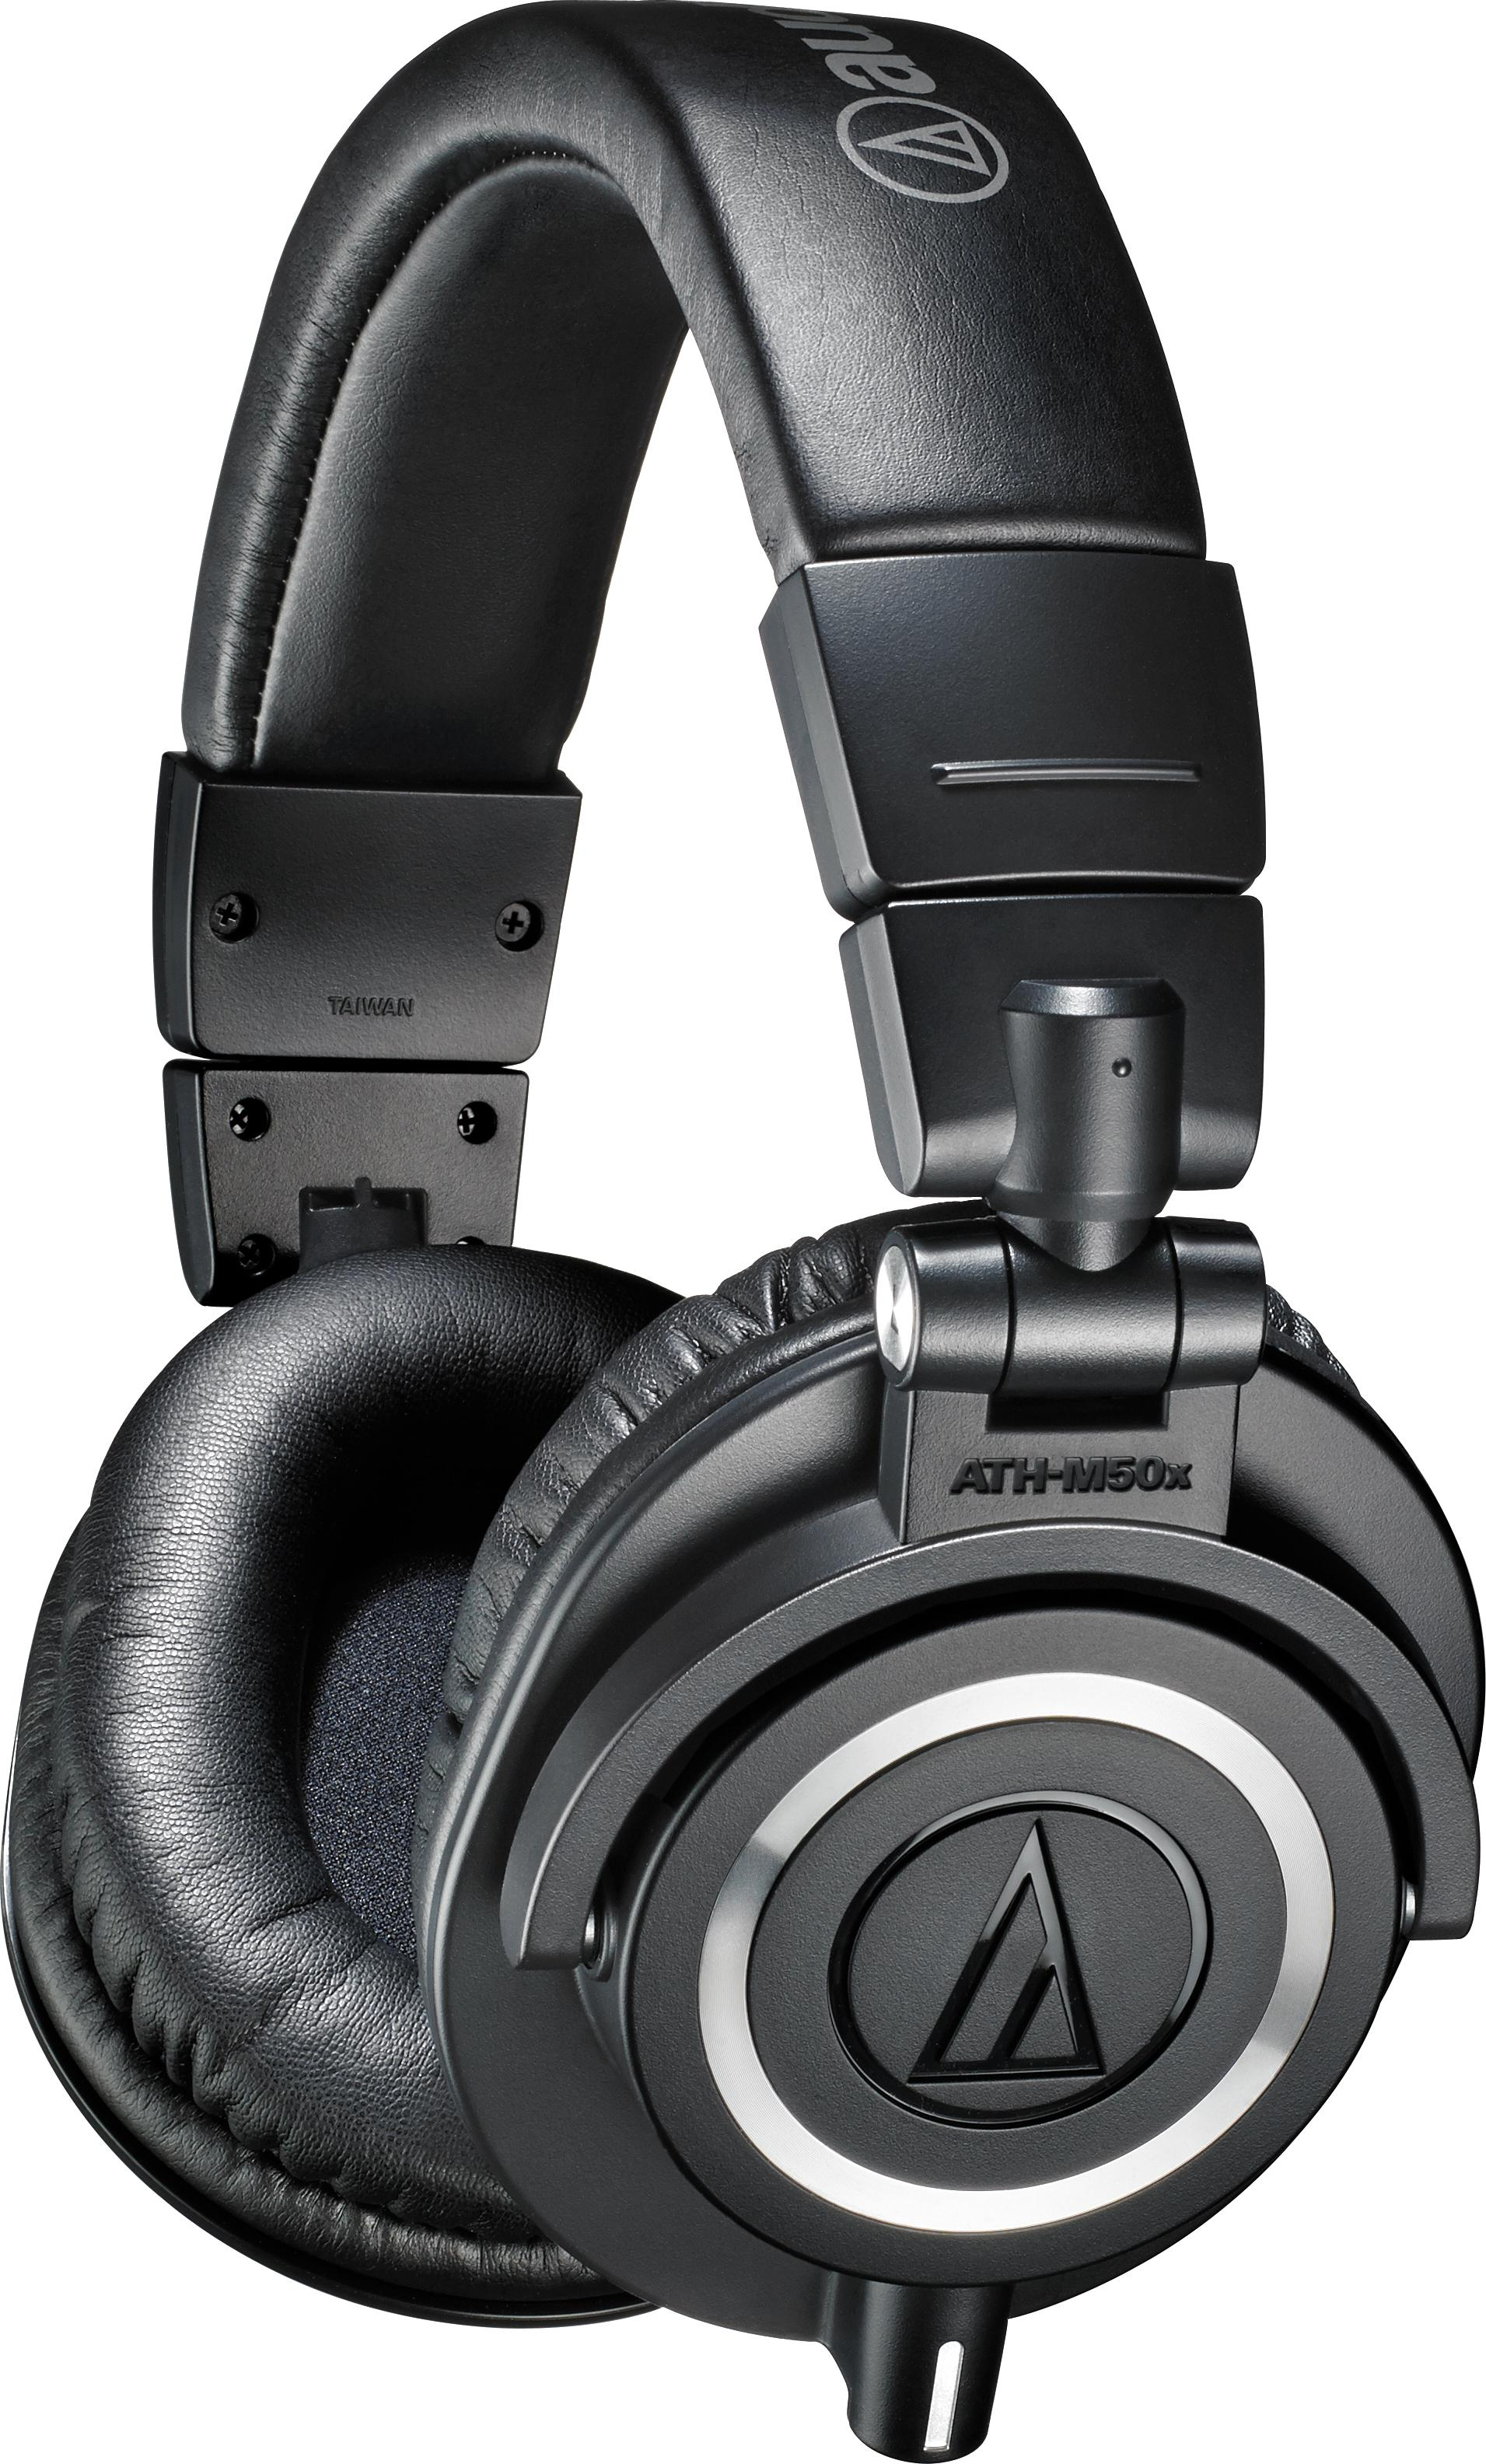 audio technica ath m50x compare headphones. Black Bedroom Furniture Sets. Home Design Ideas